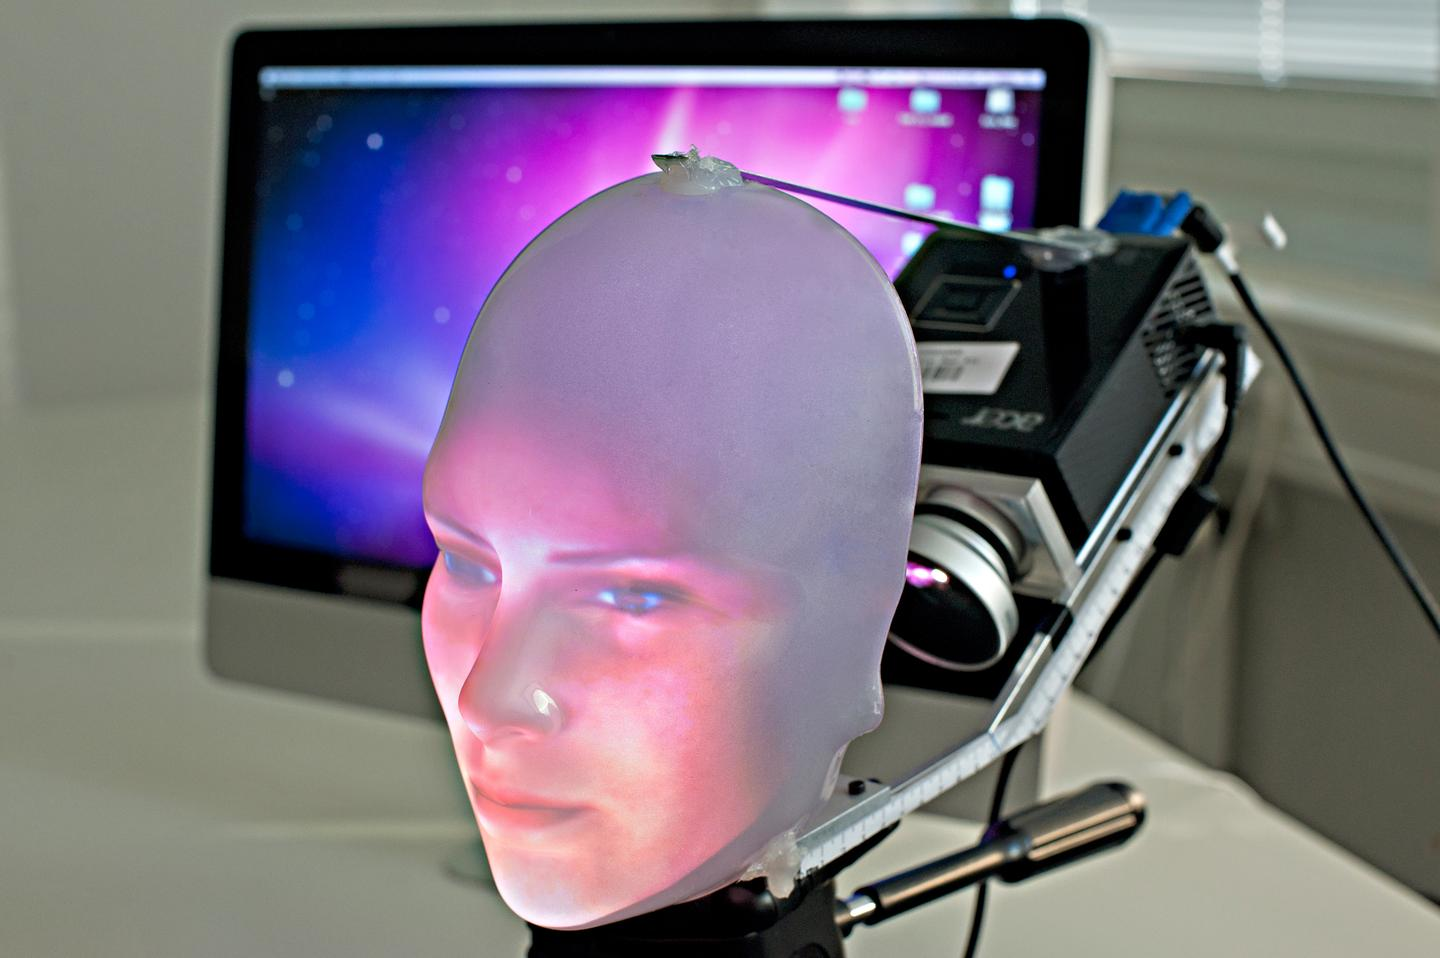 Mask-bot could be used for video conferences